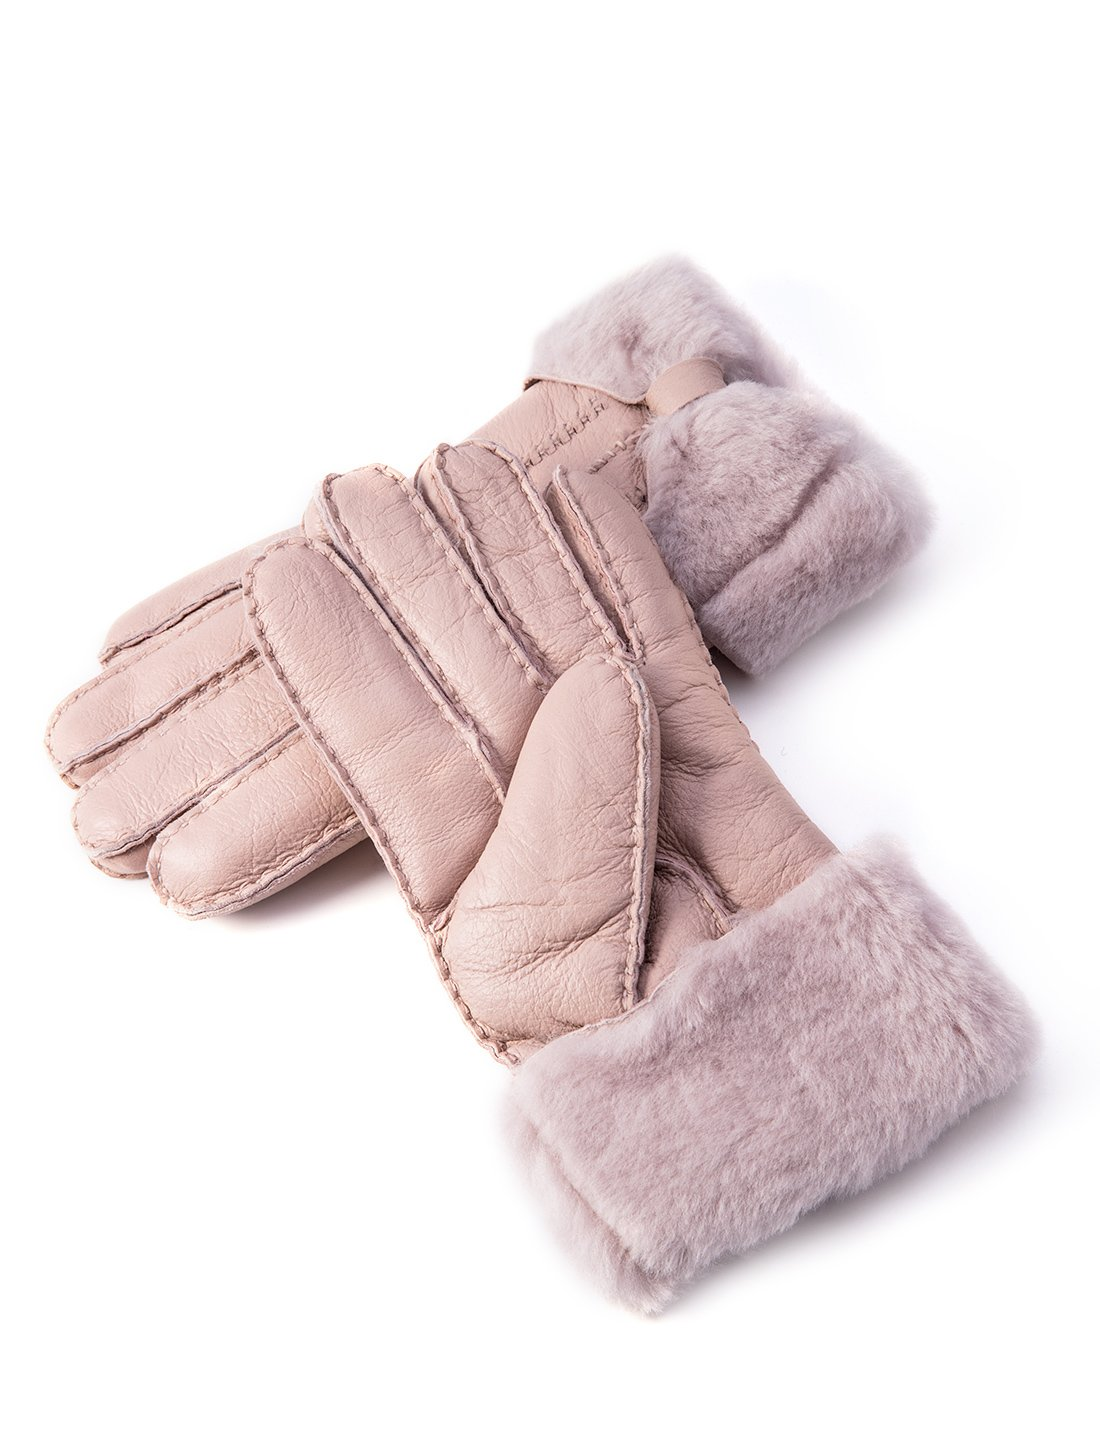 YISEVEN Women's Rugged Sheepskin Shearling Leather Gloves Three Points and Wing Cuffs Soft Thick Furry Fur Lined Warm Lining for Winter Cold Weather Heated Dress Driving Work Xmas Gifts, Pearl Pink S by YISEVEN (Image #1)